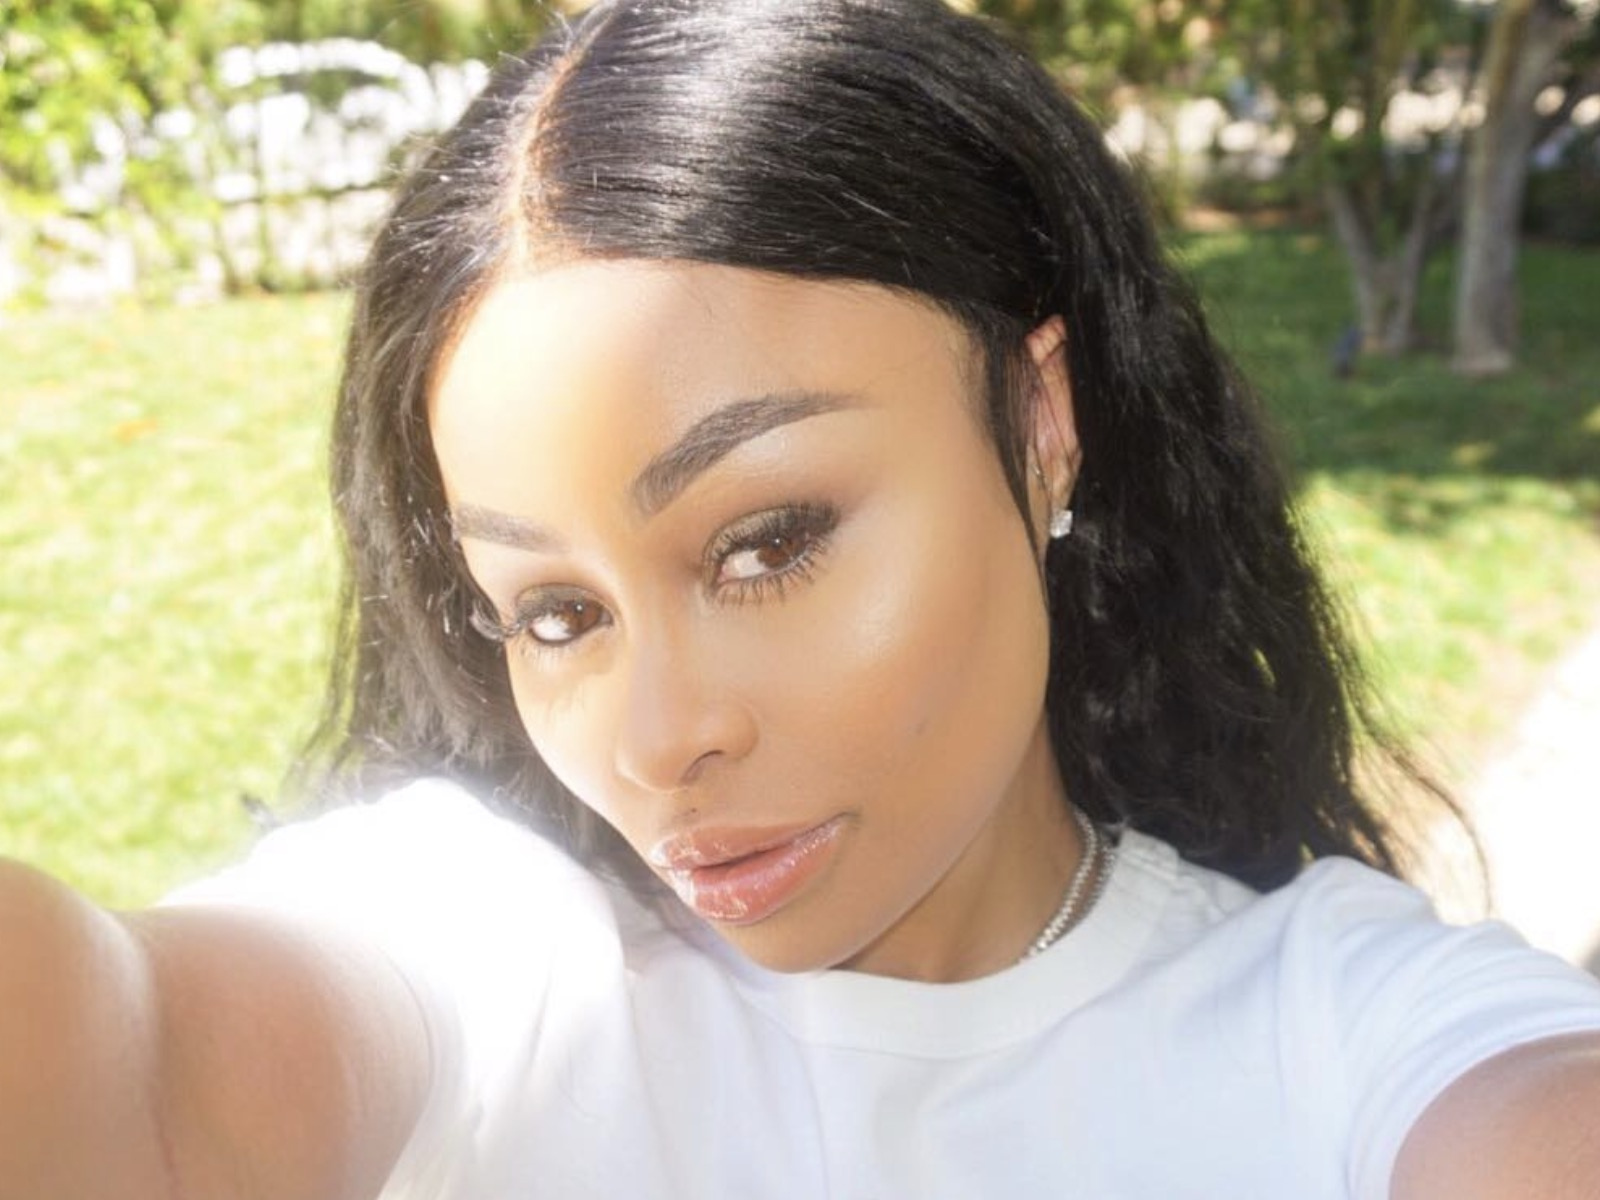 Blac Chyna Talks About Her Mom, Tokyo Toni's Reaction When She Saw Her Stripping